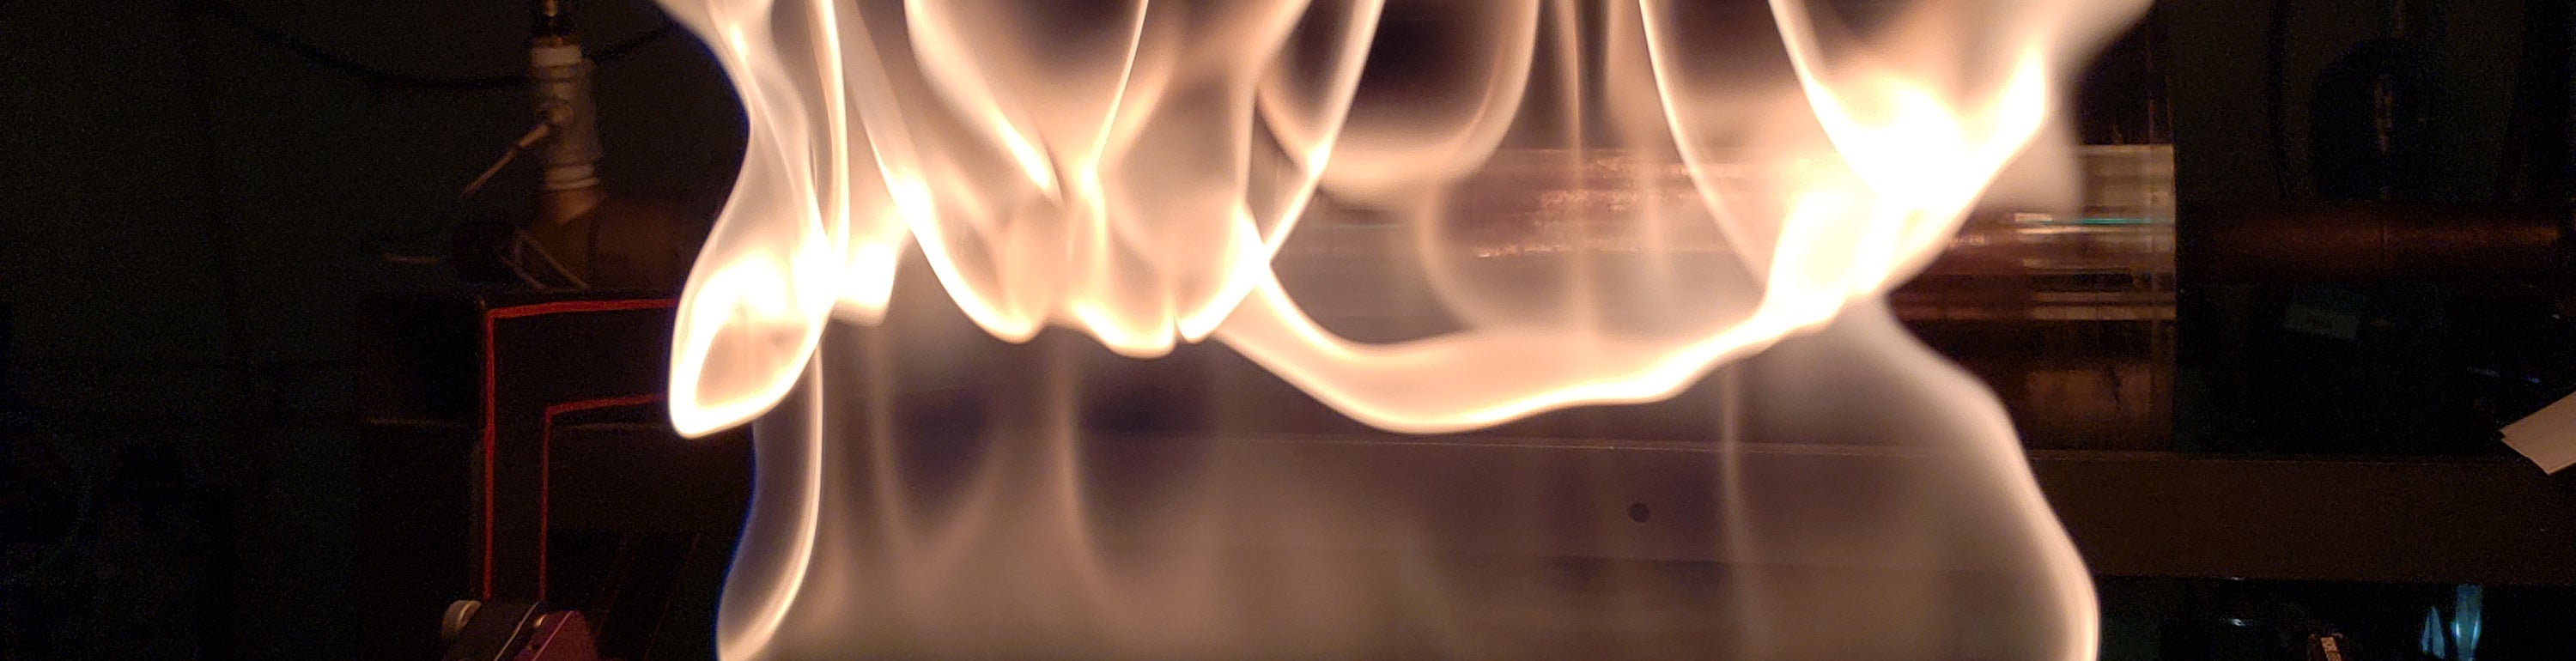 combustion study in Greg Rieker's lab